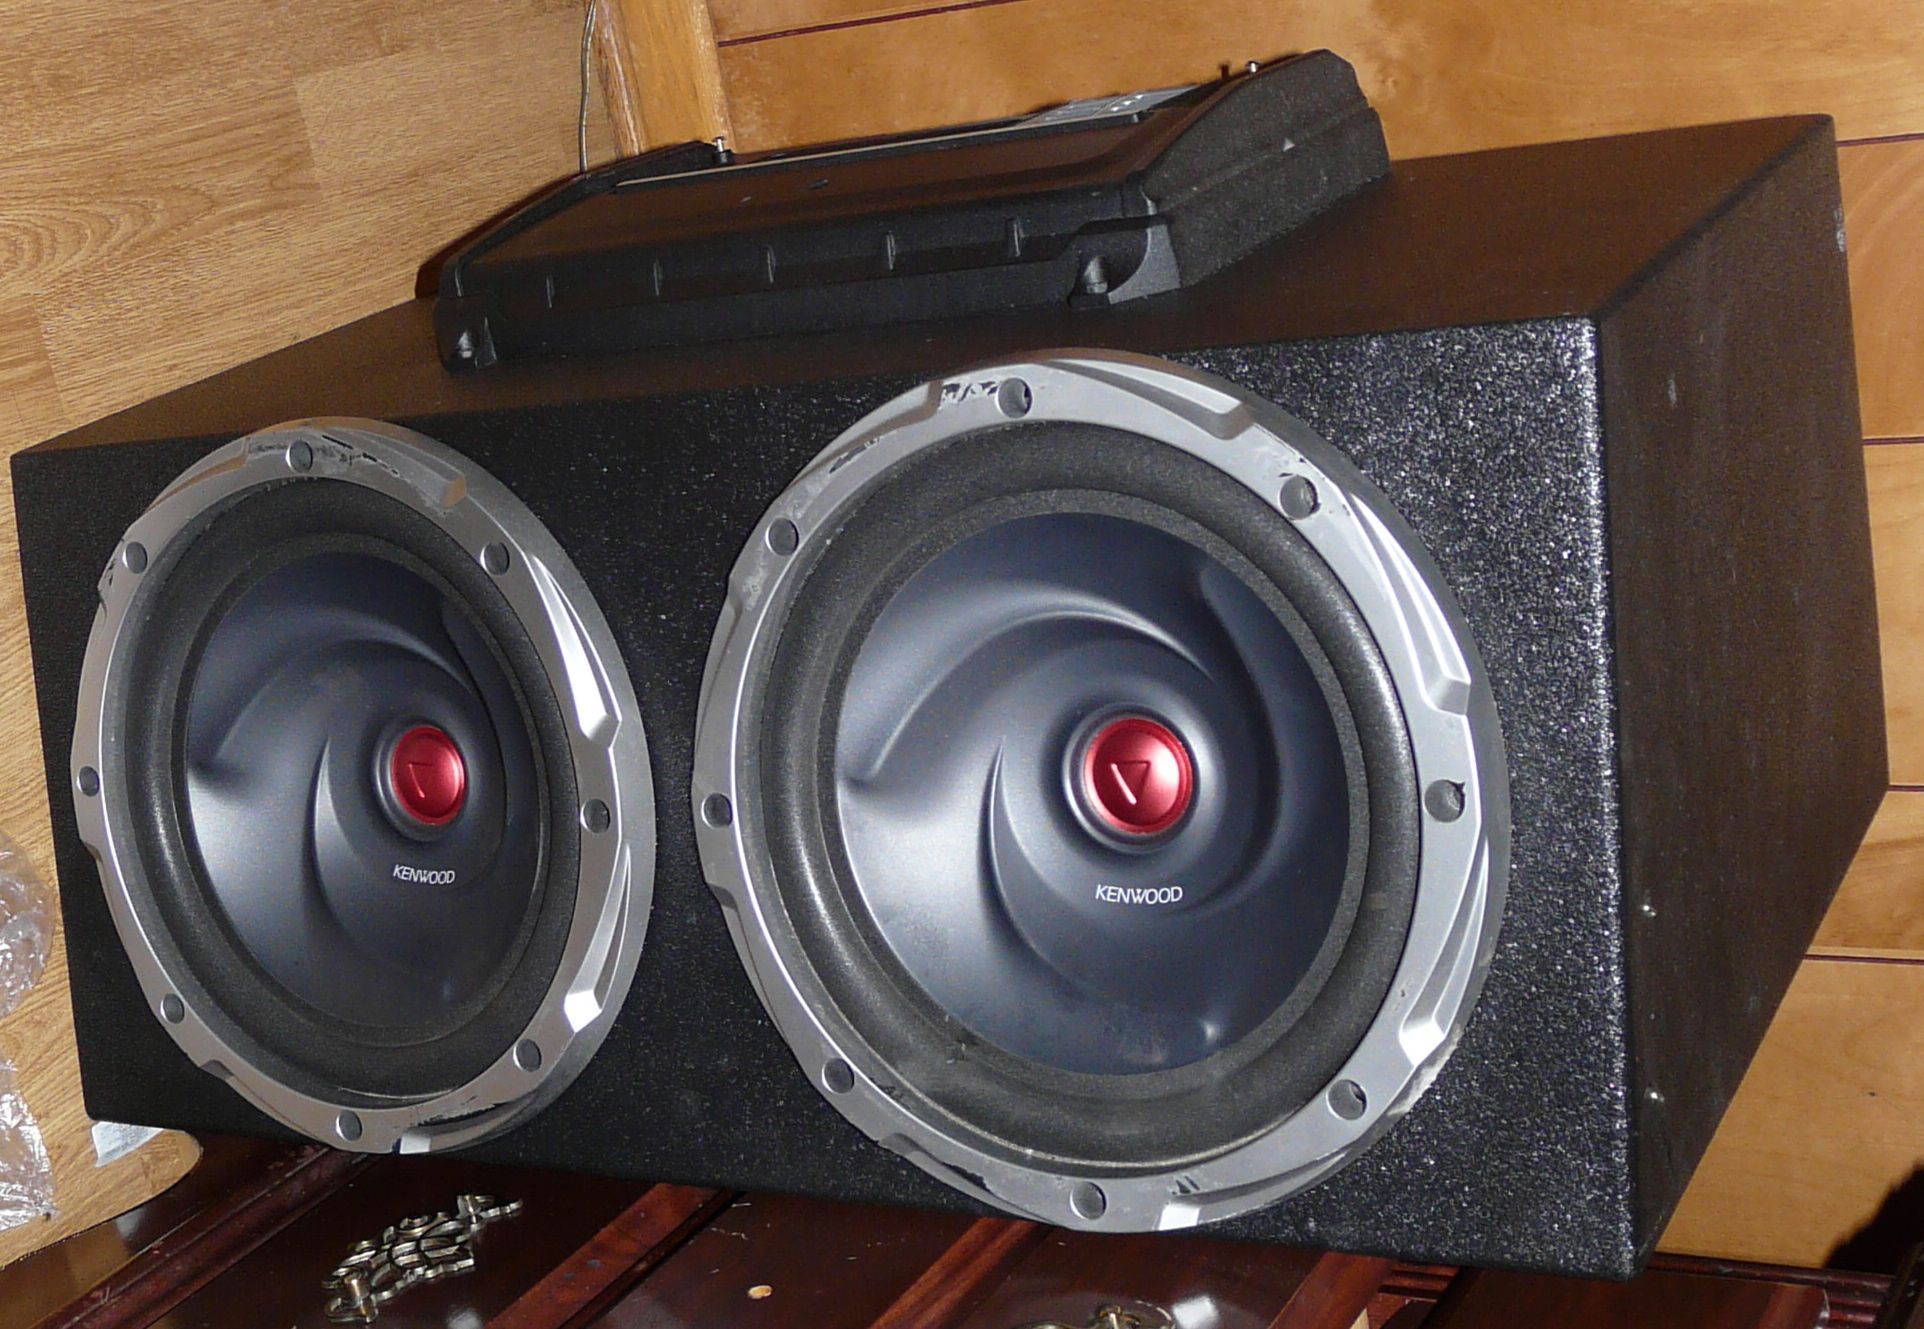 Kenwood Subwoofer Amp Combo Includes Good Sealed Box Pefect For The